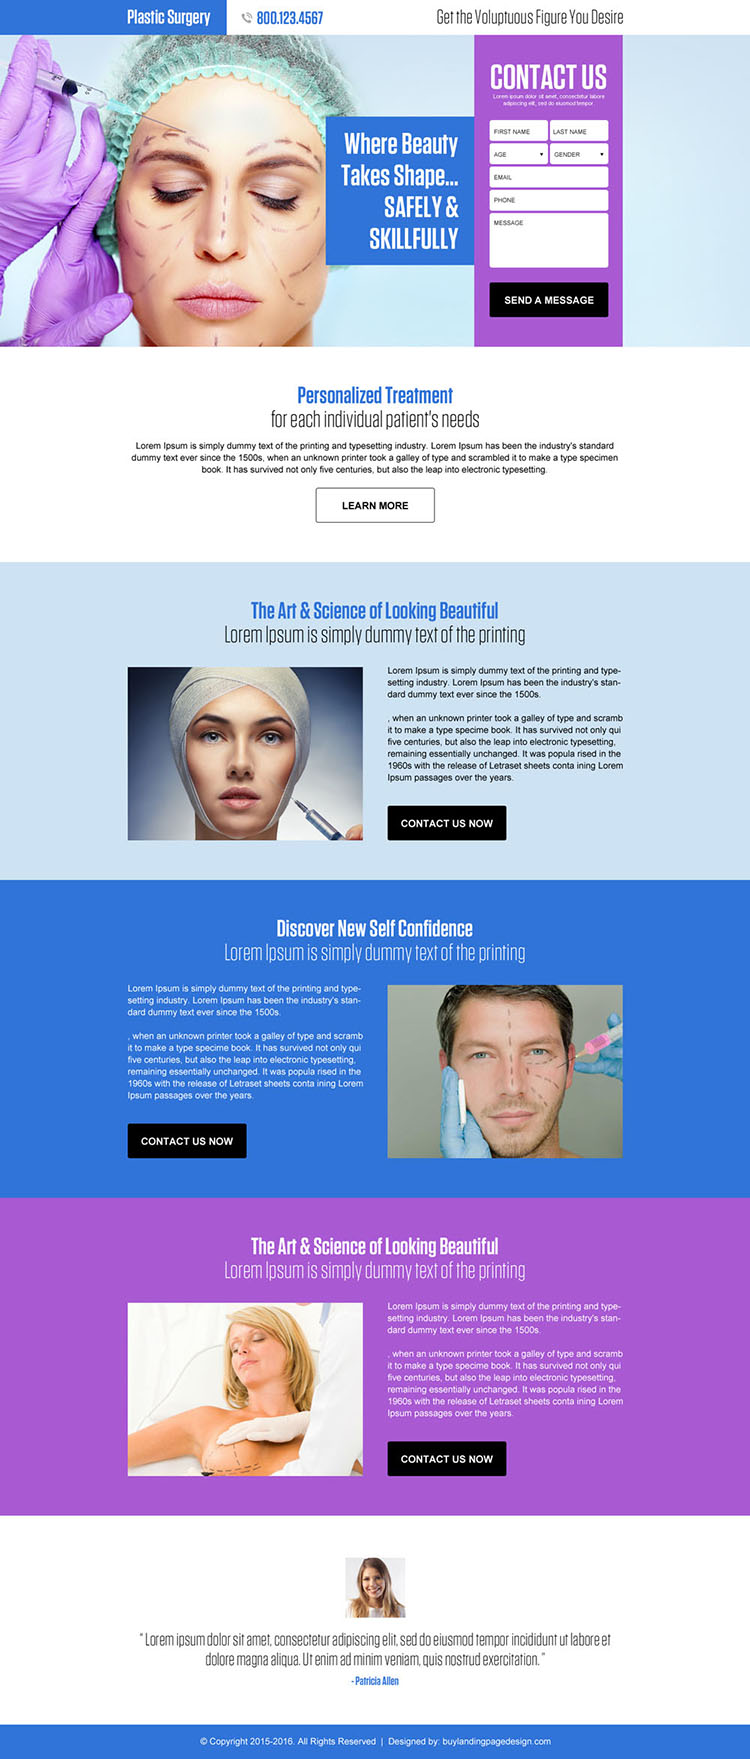 plastic surgery lead generating responsive landing page design